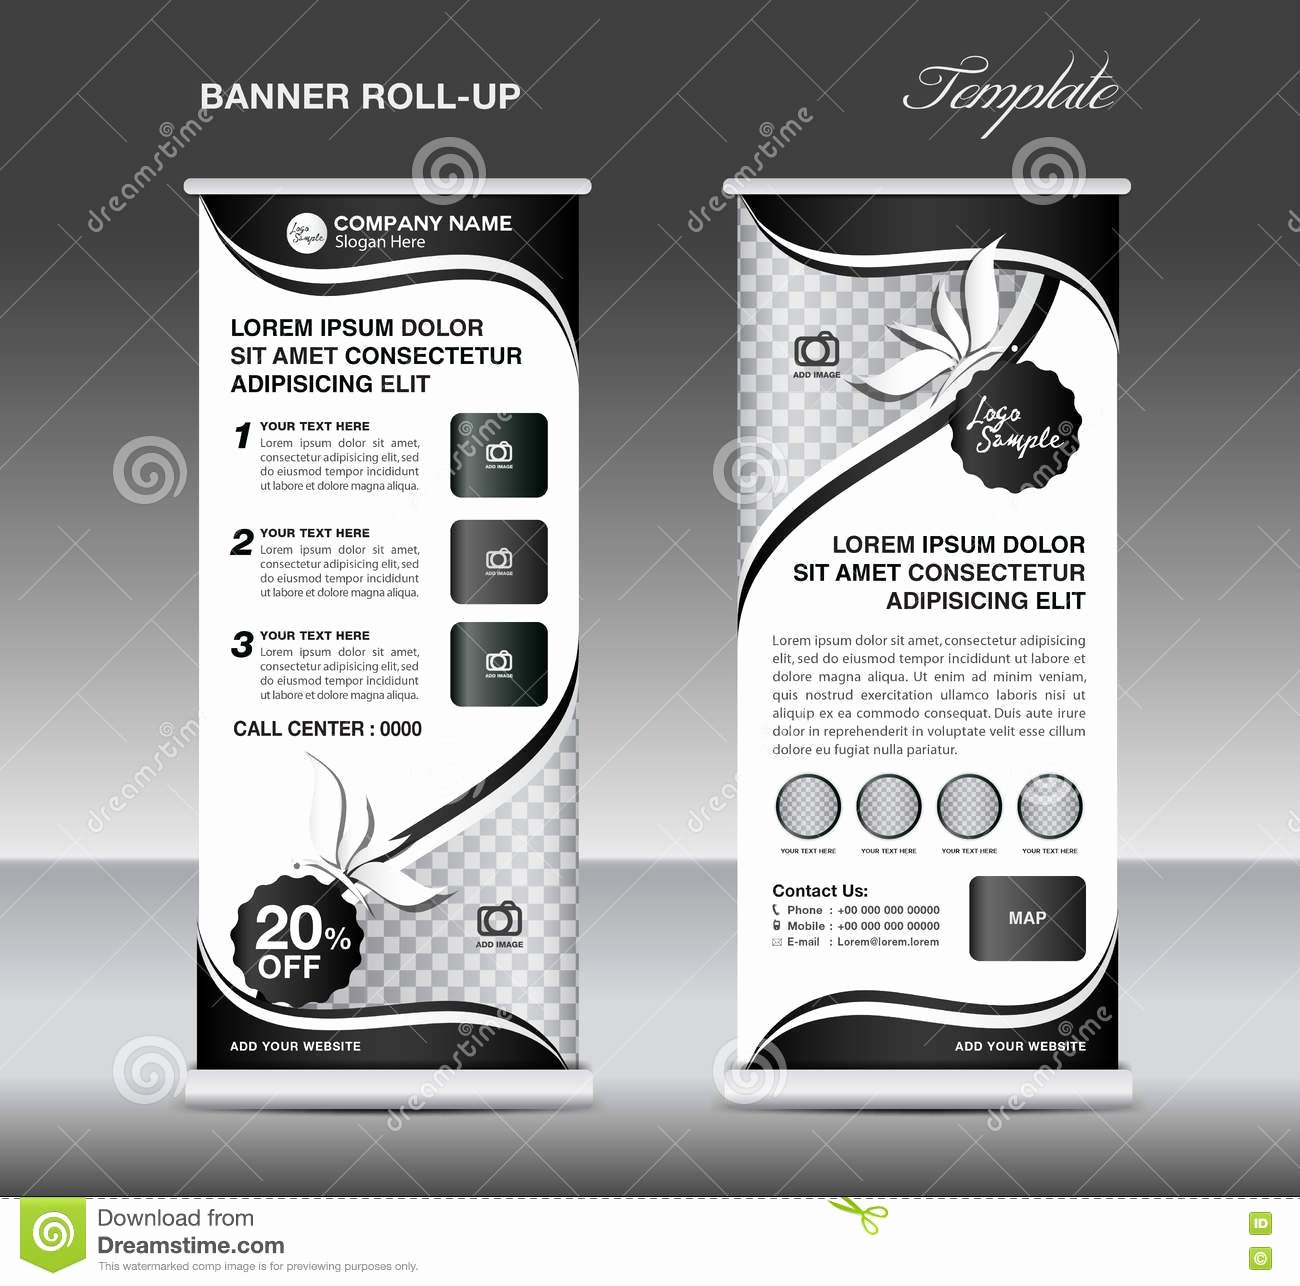 Black and White Flyer Design Unique Black and White Roll Up Banner Stand Template Banner